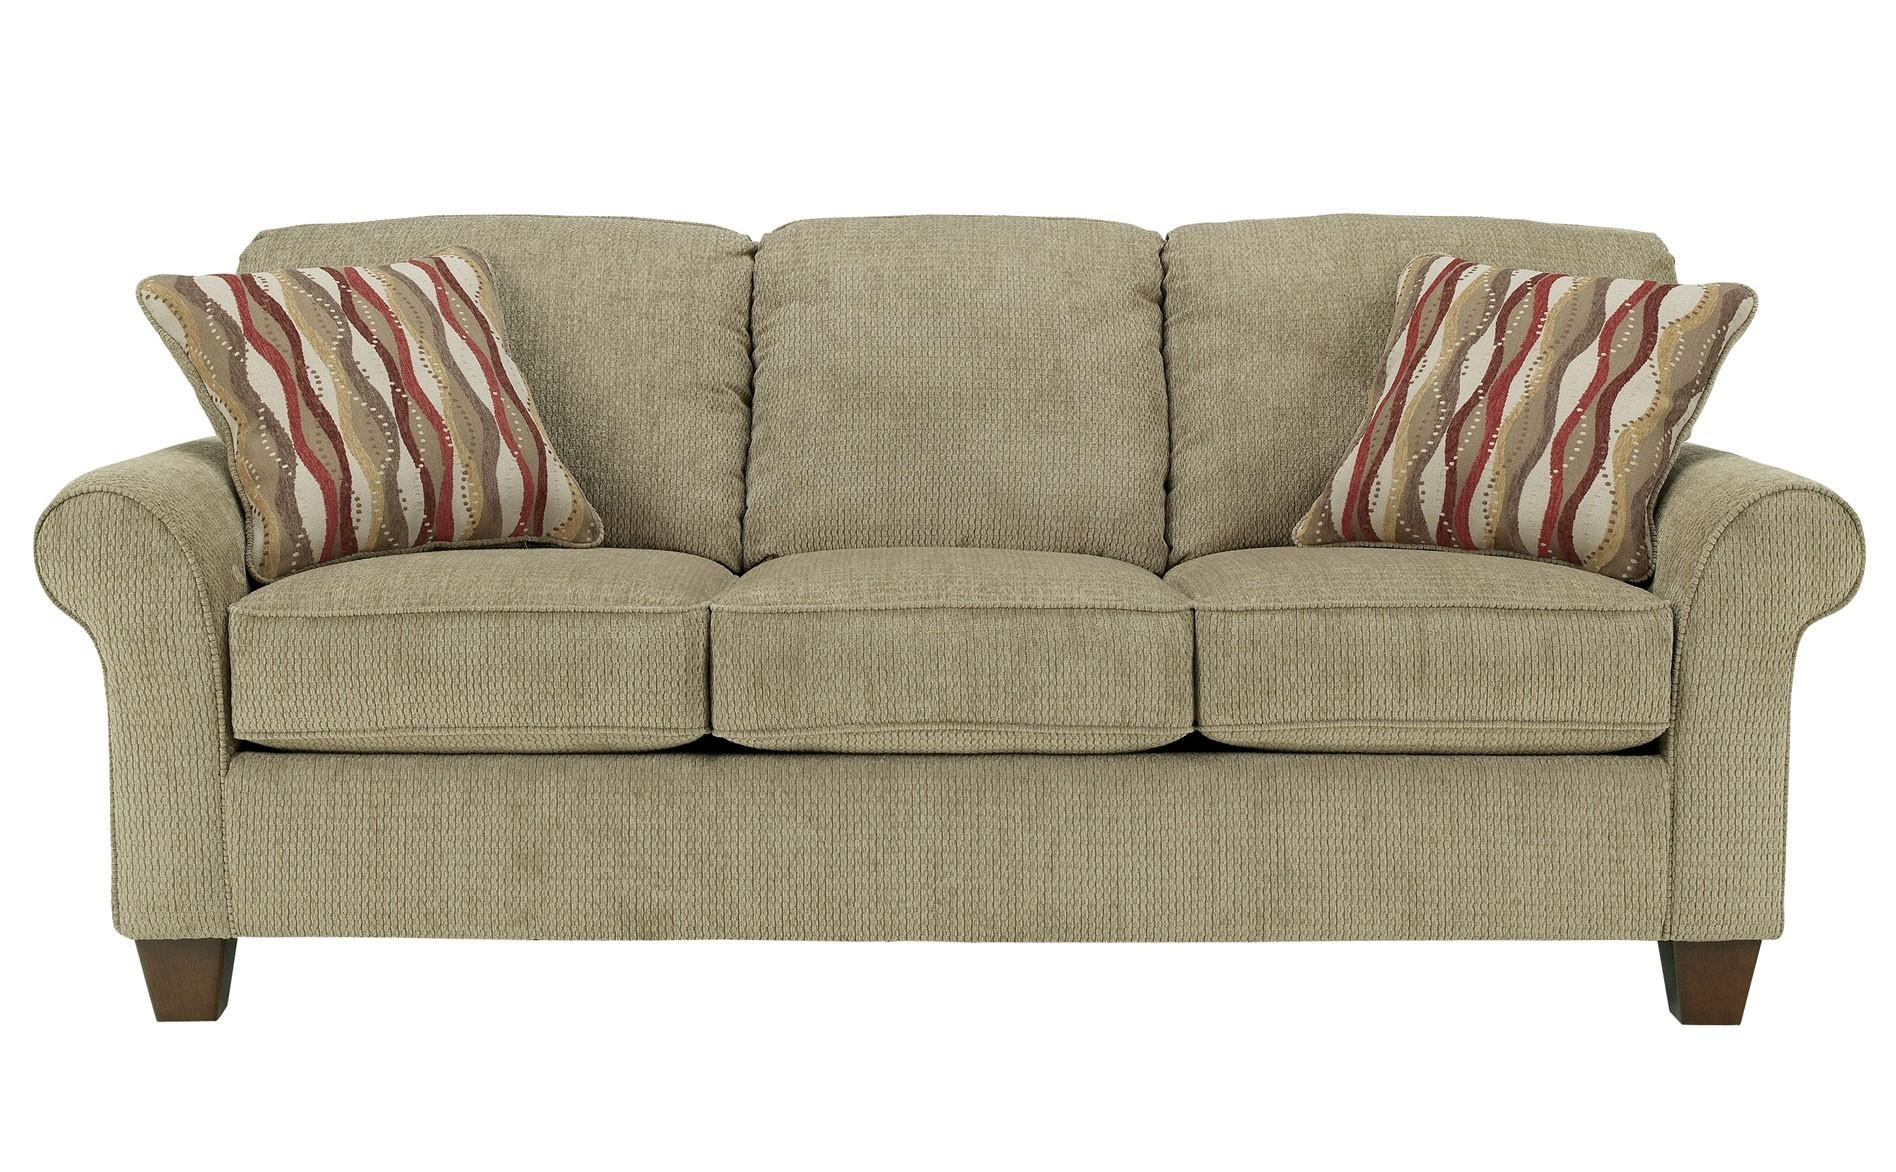 Attractive Queen Sofa Sleeper Catchy Furniture Home Design Ideas With Queen Convertible Sofas (View 8 of 20)